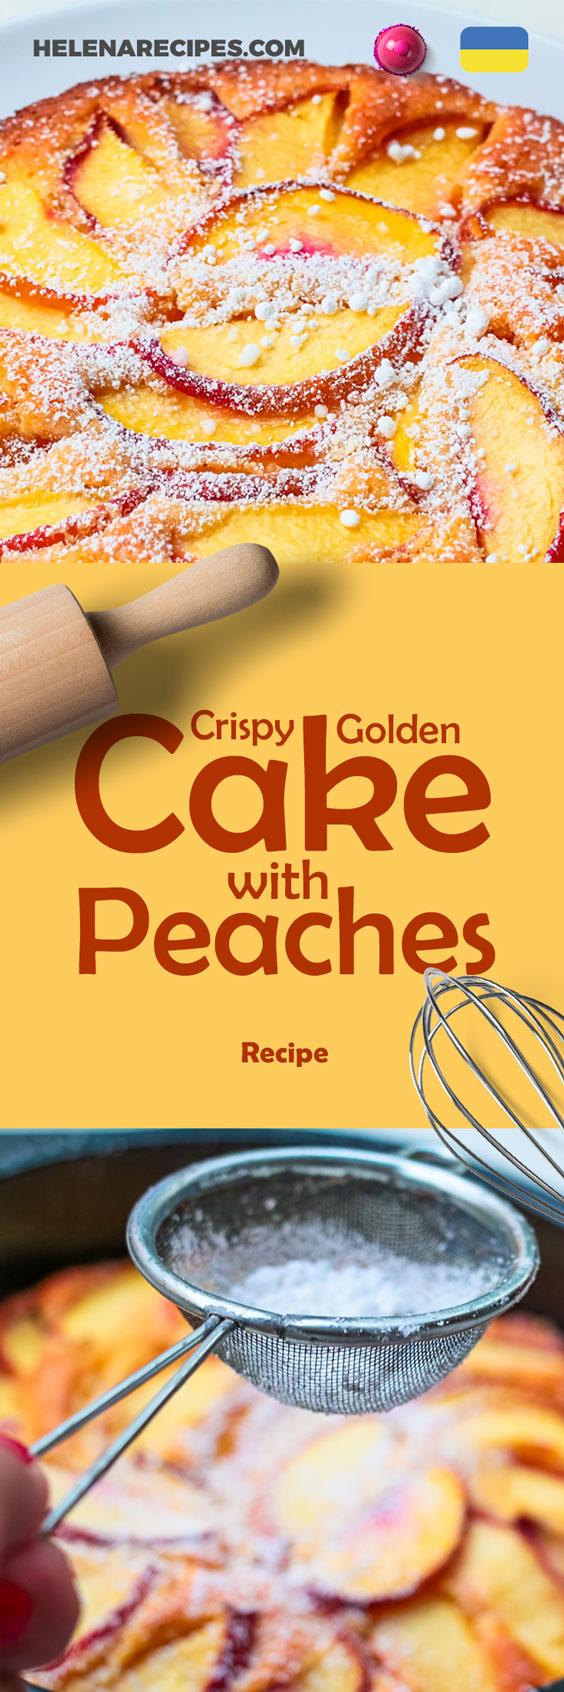 Crispy Golden Cake with Peaches Pinterest